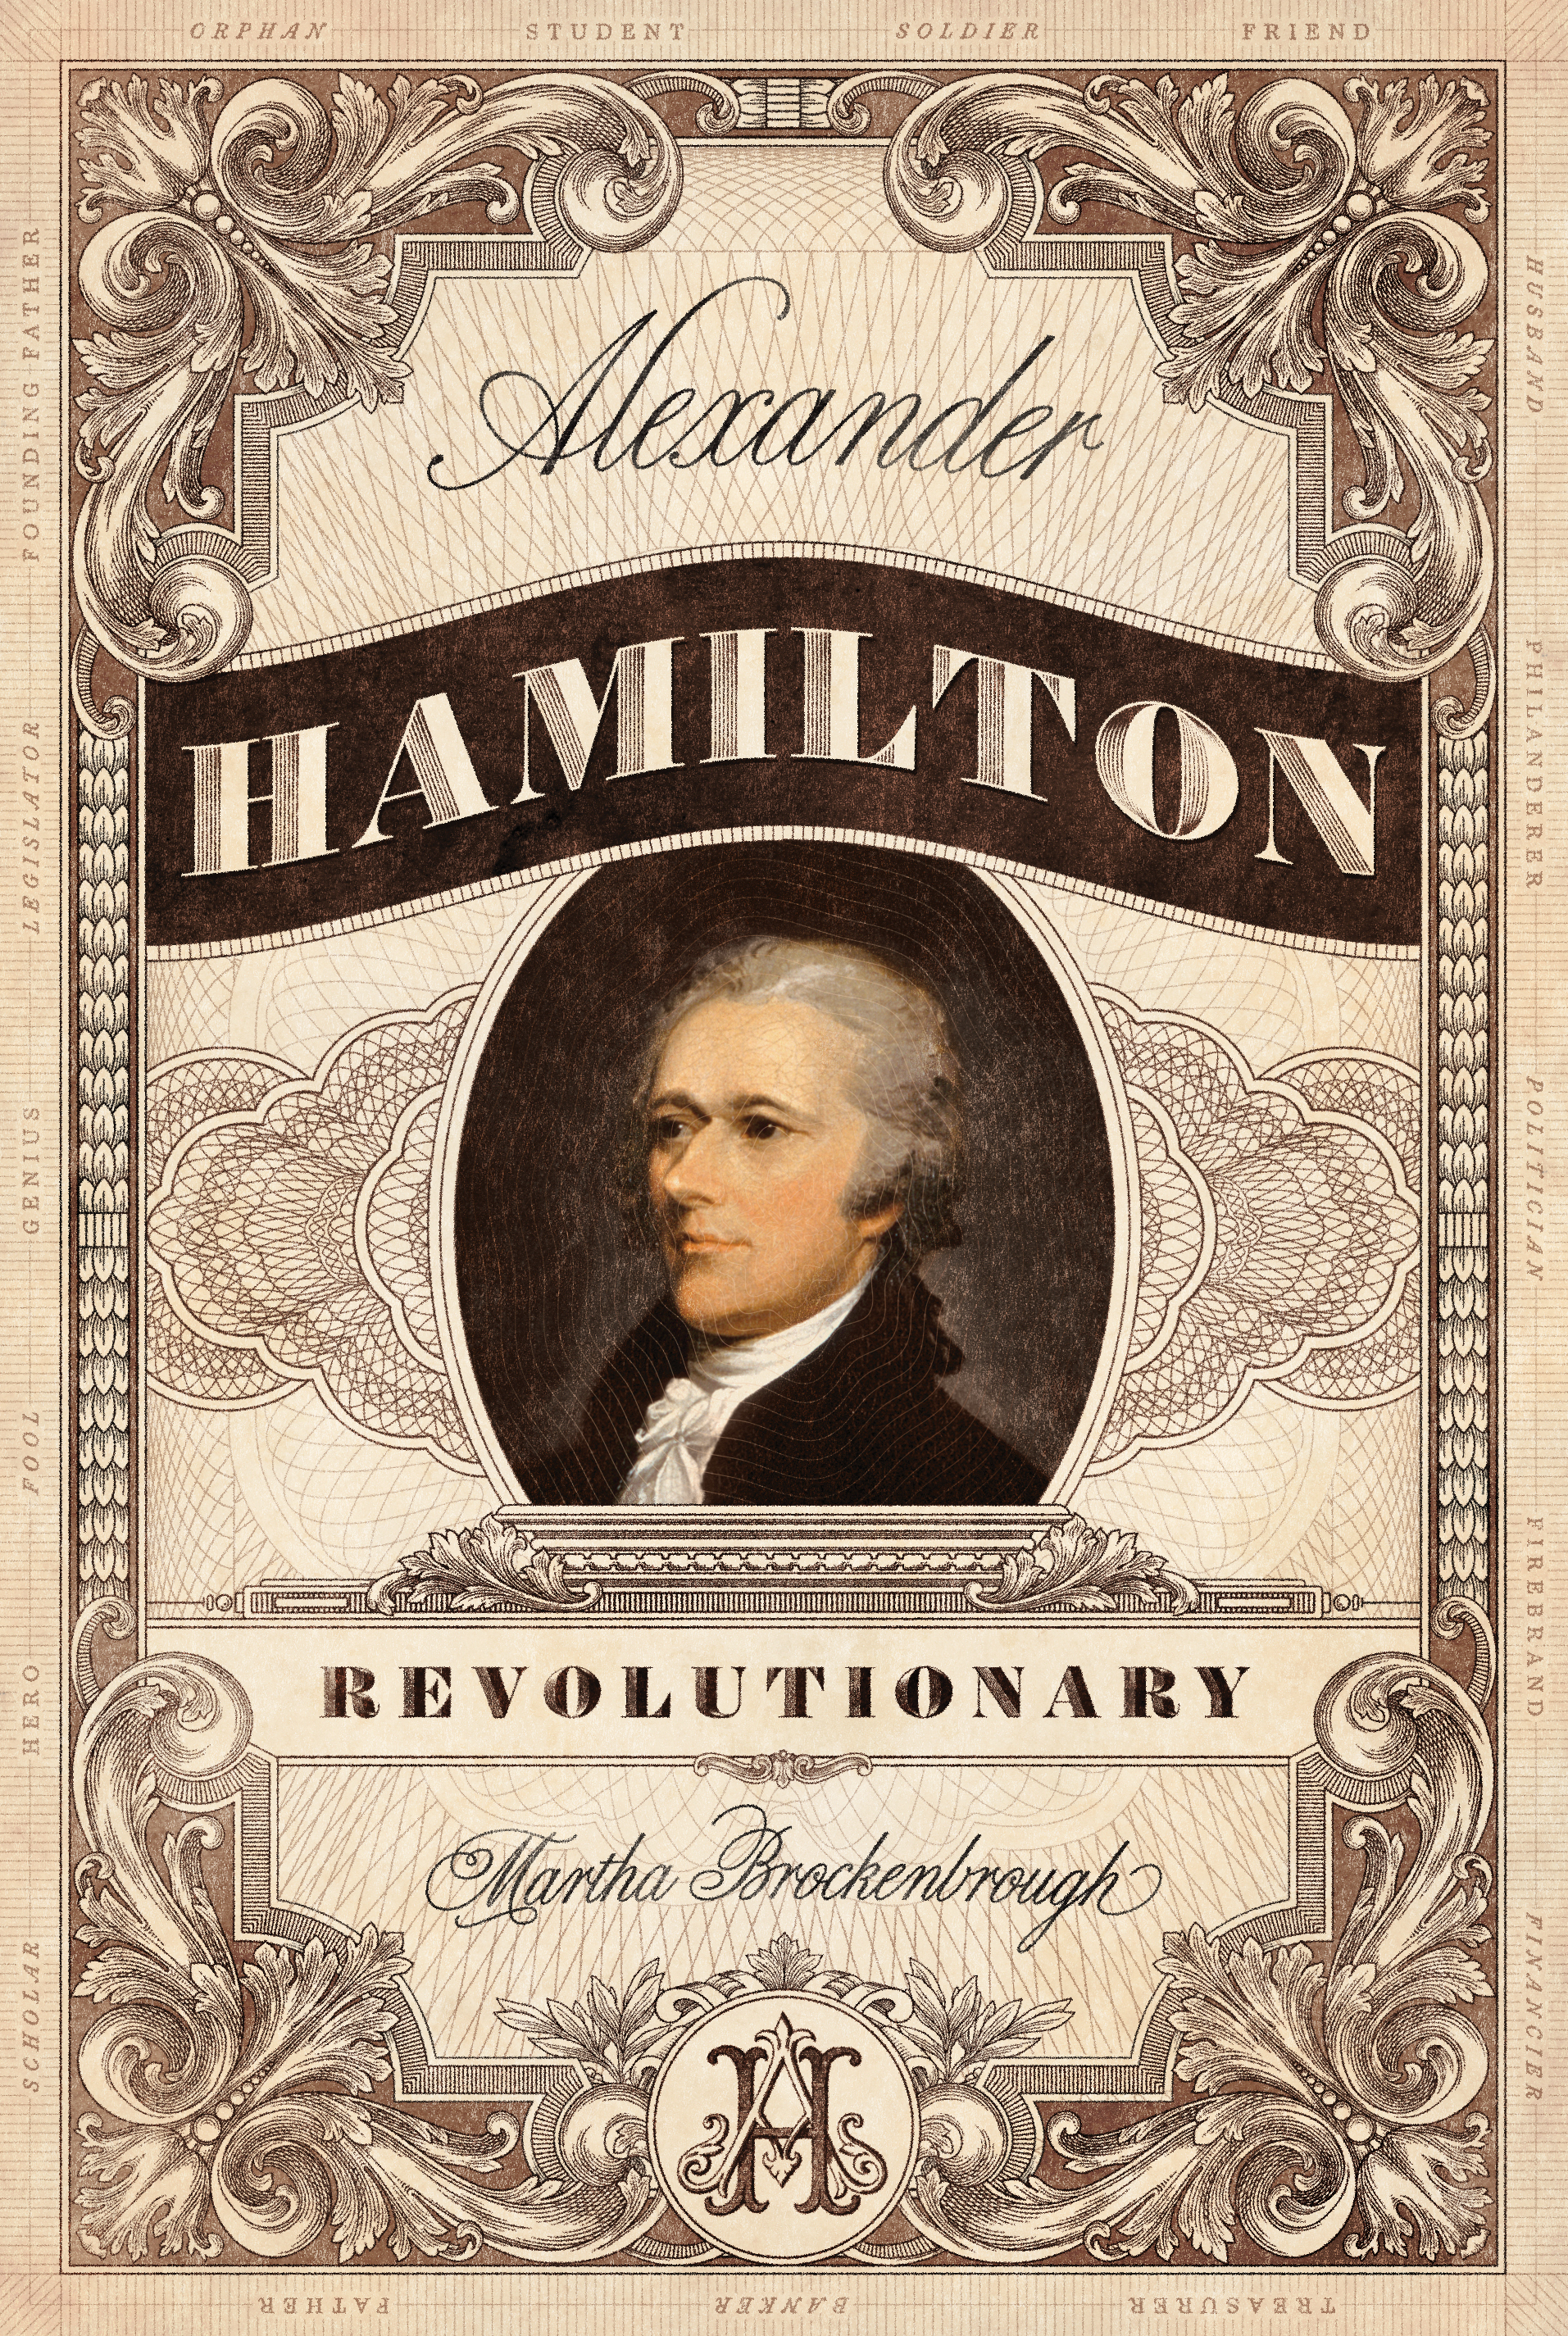 Alexander Hamilton, Revolutionary   A biography of the brilliant founding father, from his childhood in St. Croix to his death at the hands of Vice President Aaron Burr.